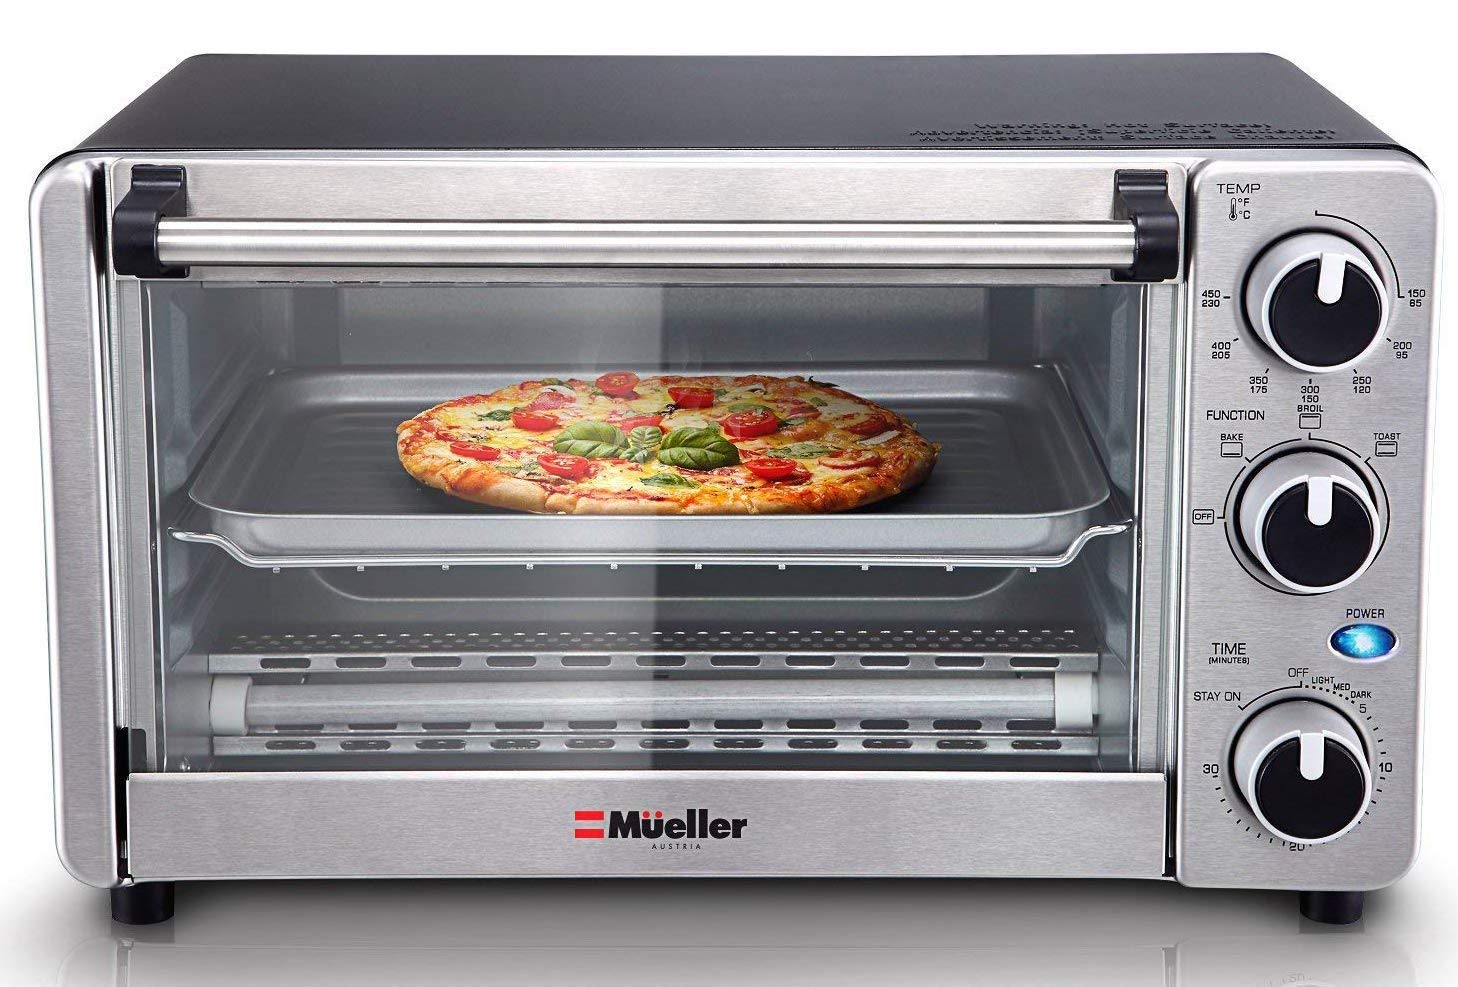 Convection Toaster Oven 4 Slice, Multi-function Stainless Steel Counter-top Design with Timer – Toast – Bake – Broil Settings – 1100 Watts of Power, Includes Baking Pan and Rack by Mueller Austria 71uxzz7 2BvLL